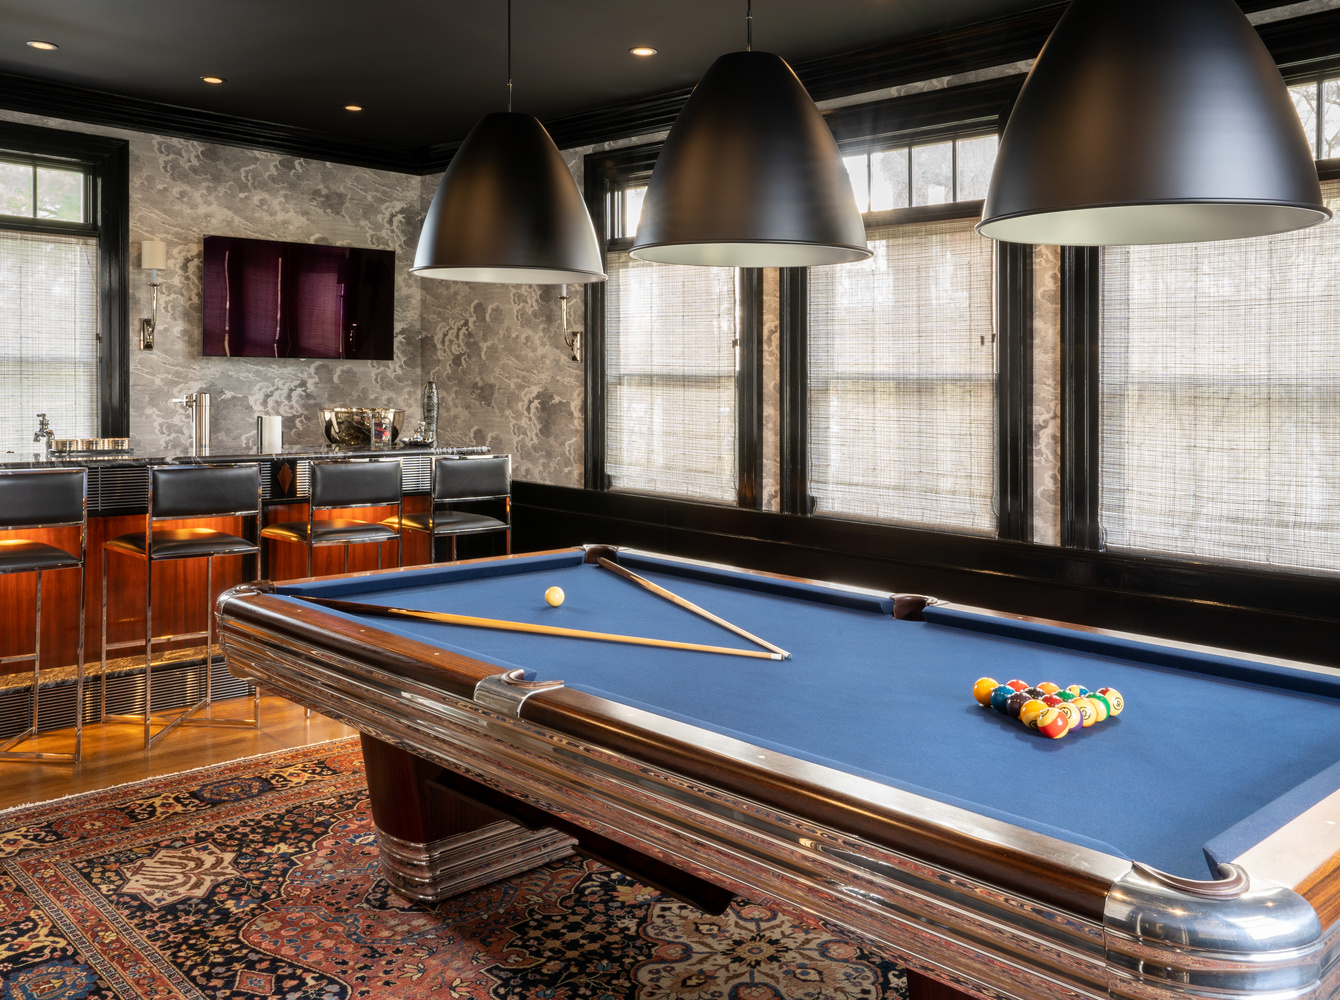 Bar/Pool Room by Chris Hill